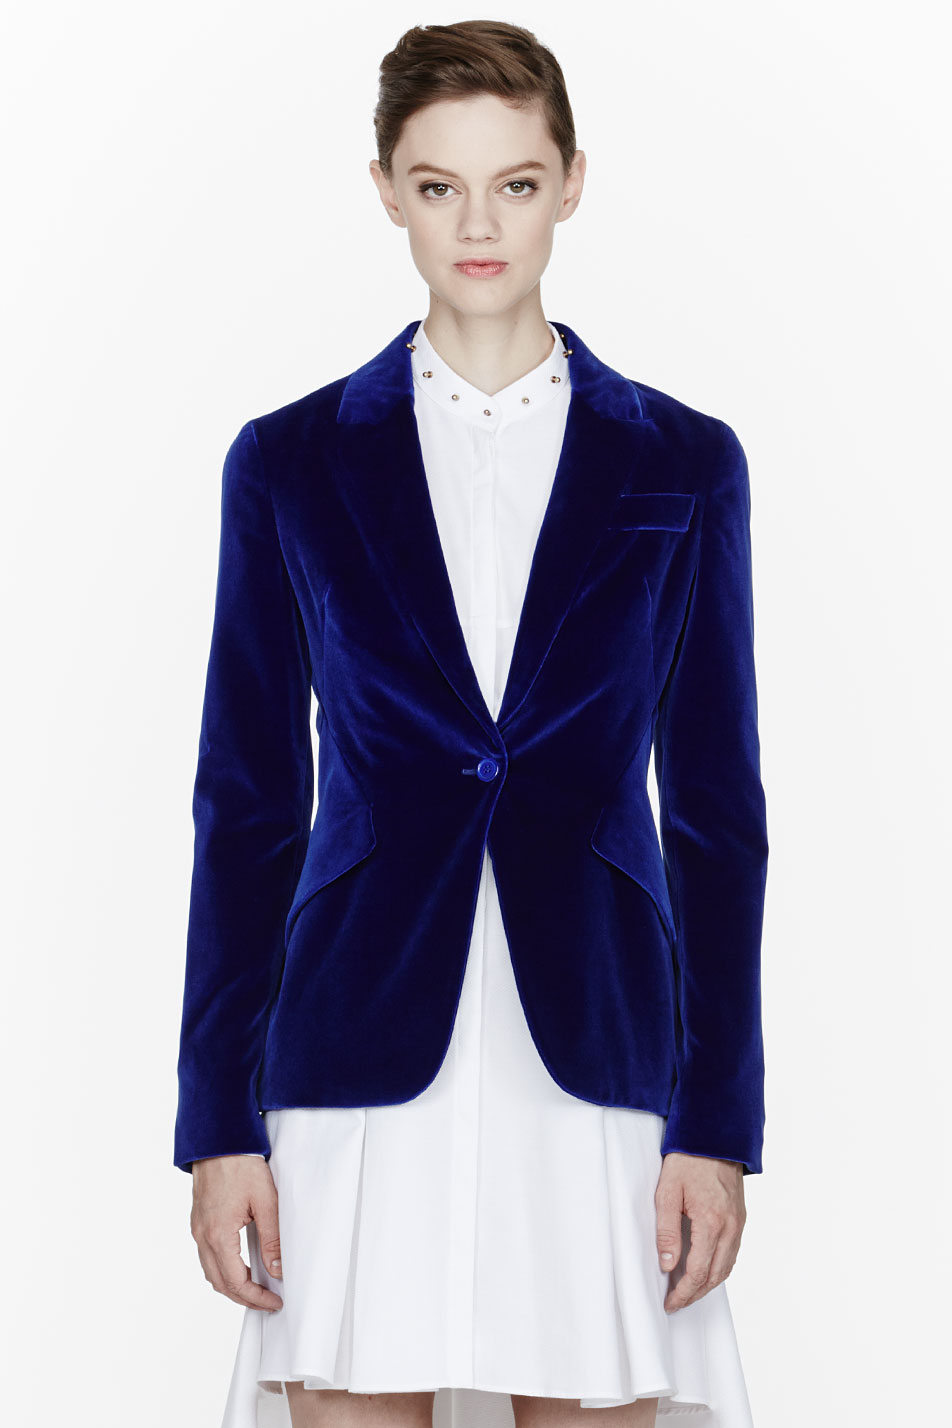 Find mens velvet blazer at Macy's Macy's Presents: The Edit - A curated mix of fashion and inspiration Check It Out Free Shipping with $49 purchase + Free Store Pickup.